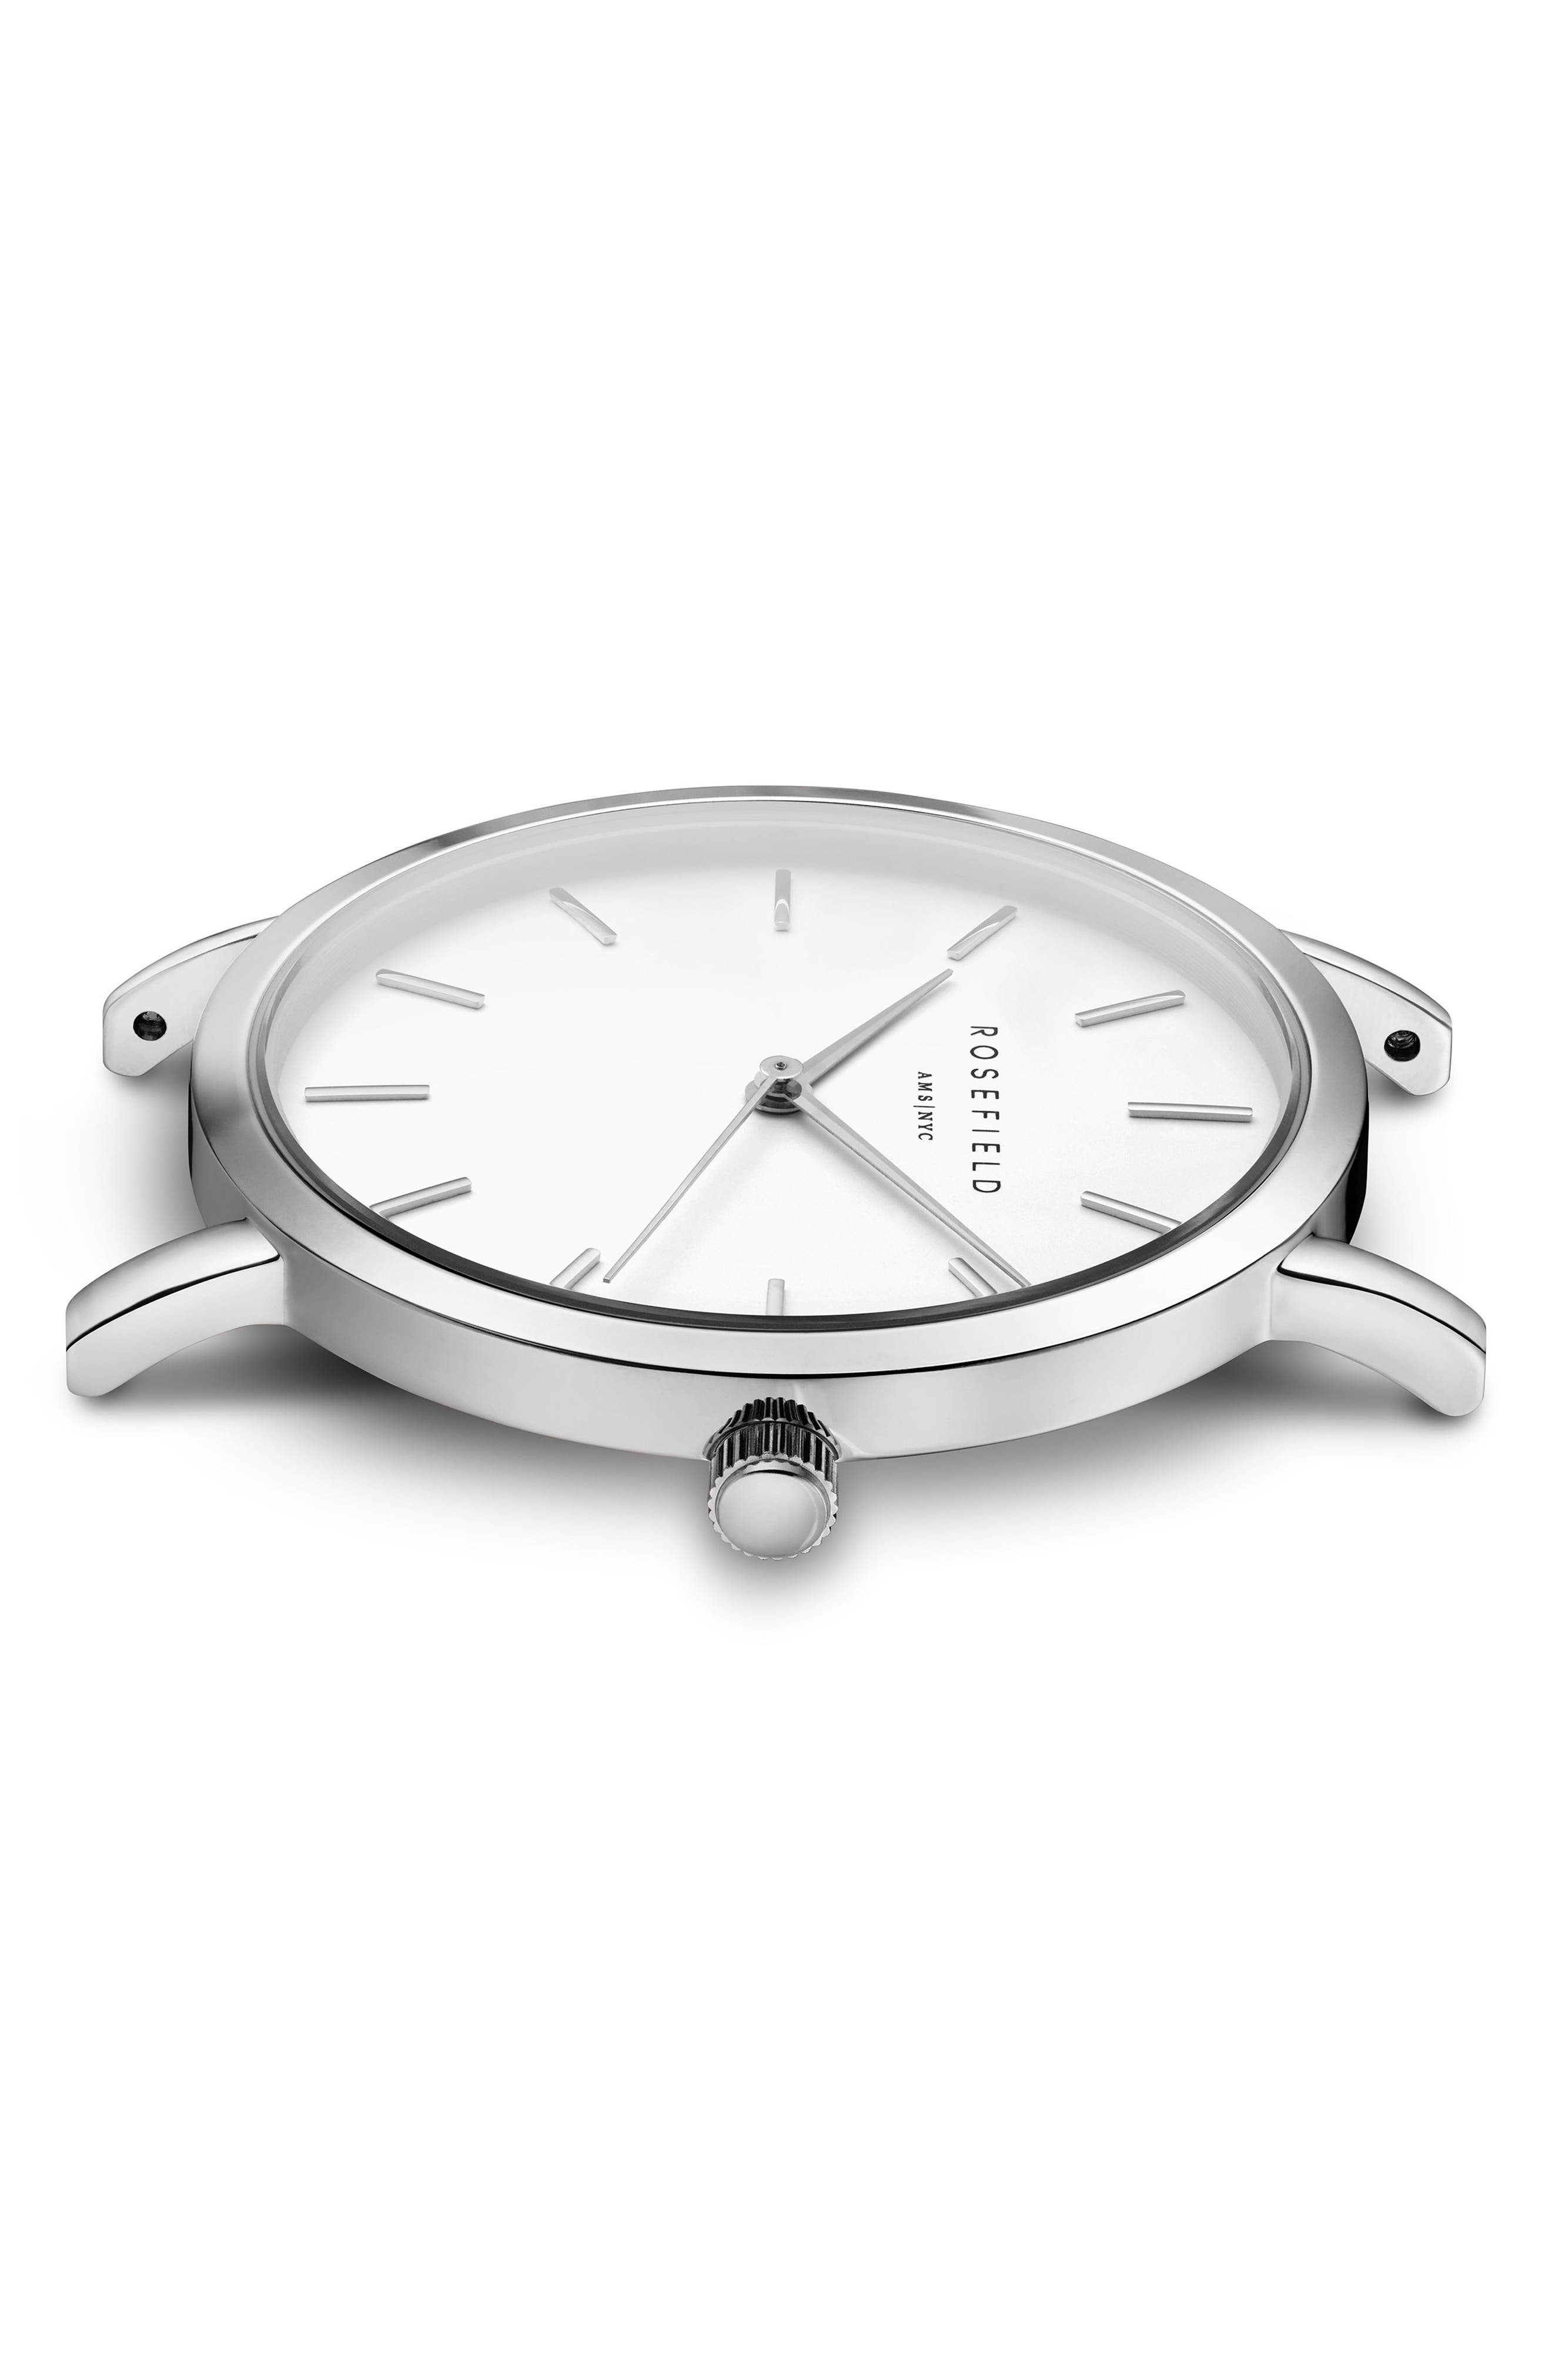 Tribeca Mesh Strap Watch, 33mm,                             Alternate thumbnail 3, color,                             Silver/ White/ Silver